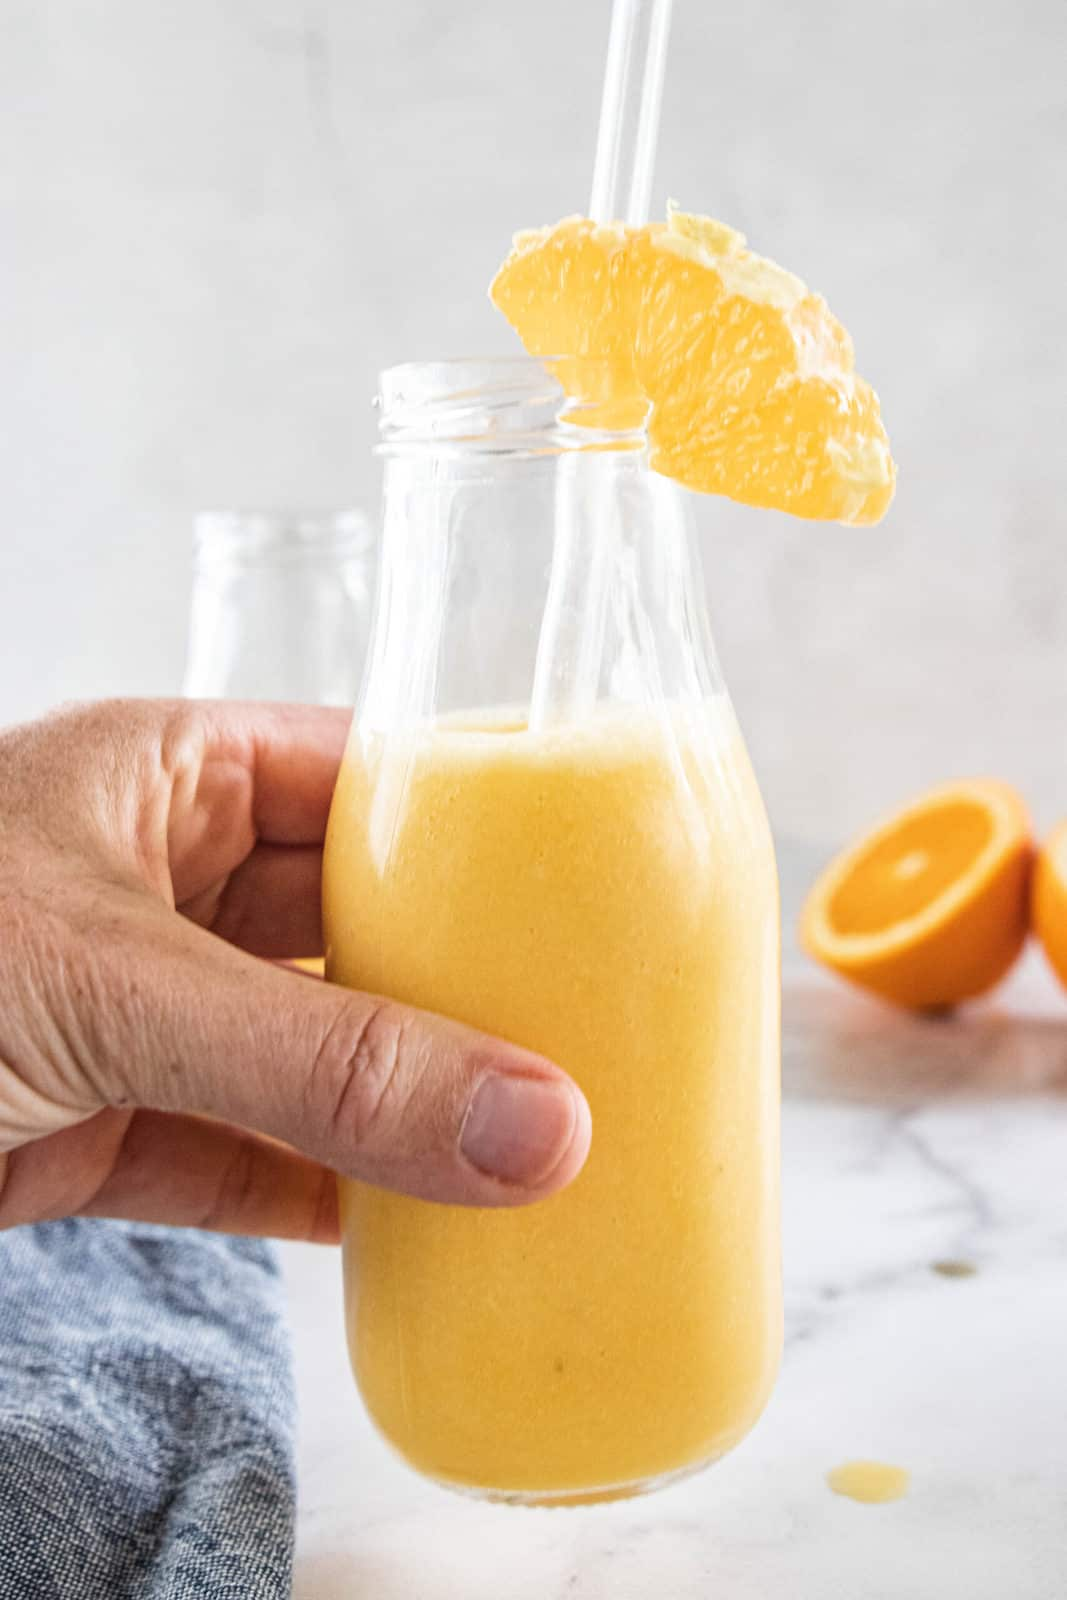 A hand holding a glass jar with a straw filled with orange smoothie.